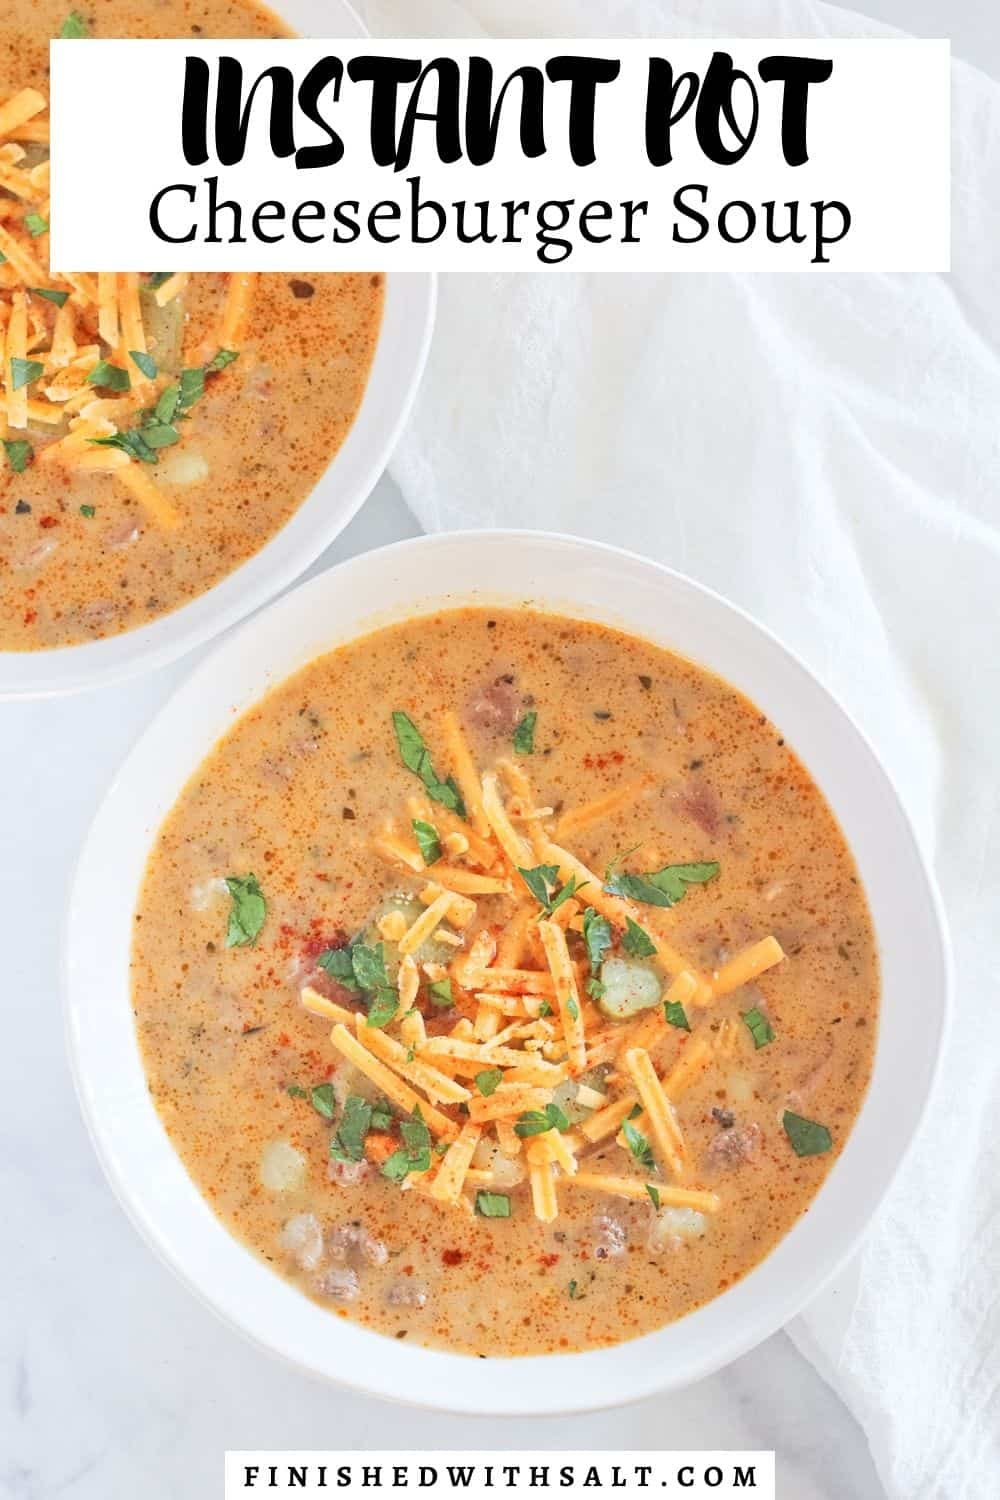 Recipe title and picture of two bowls of soup.